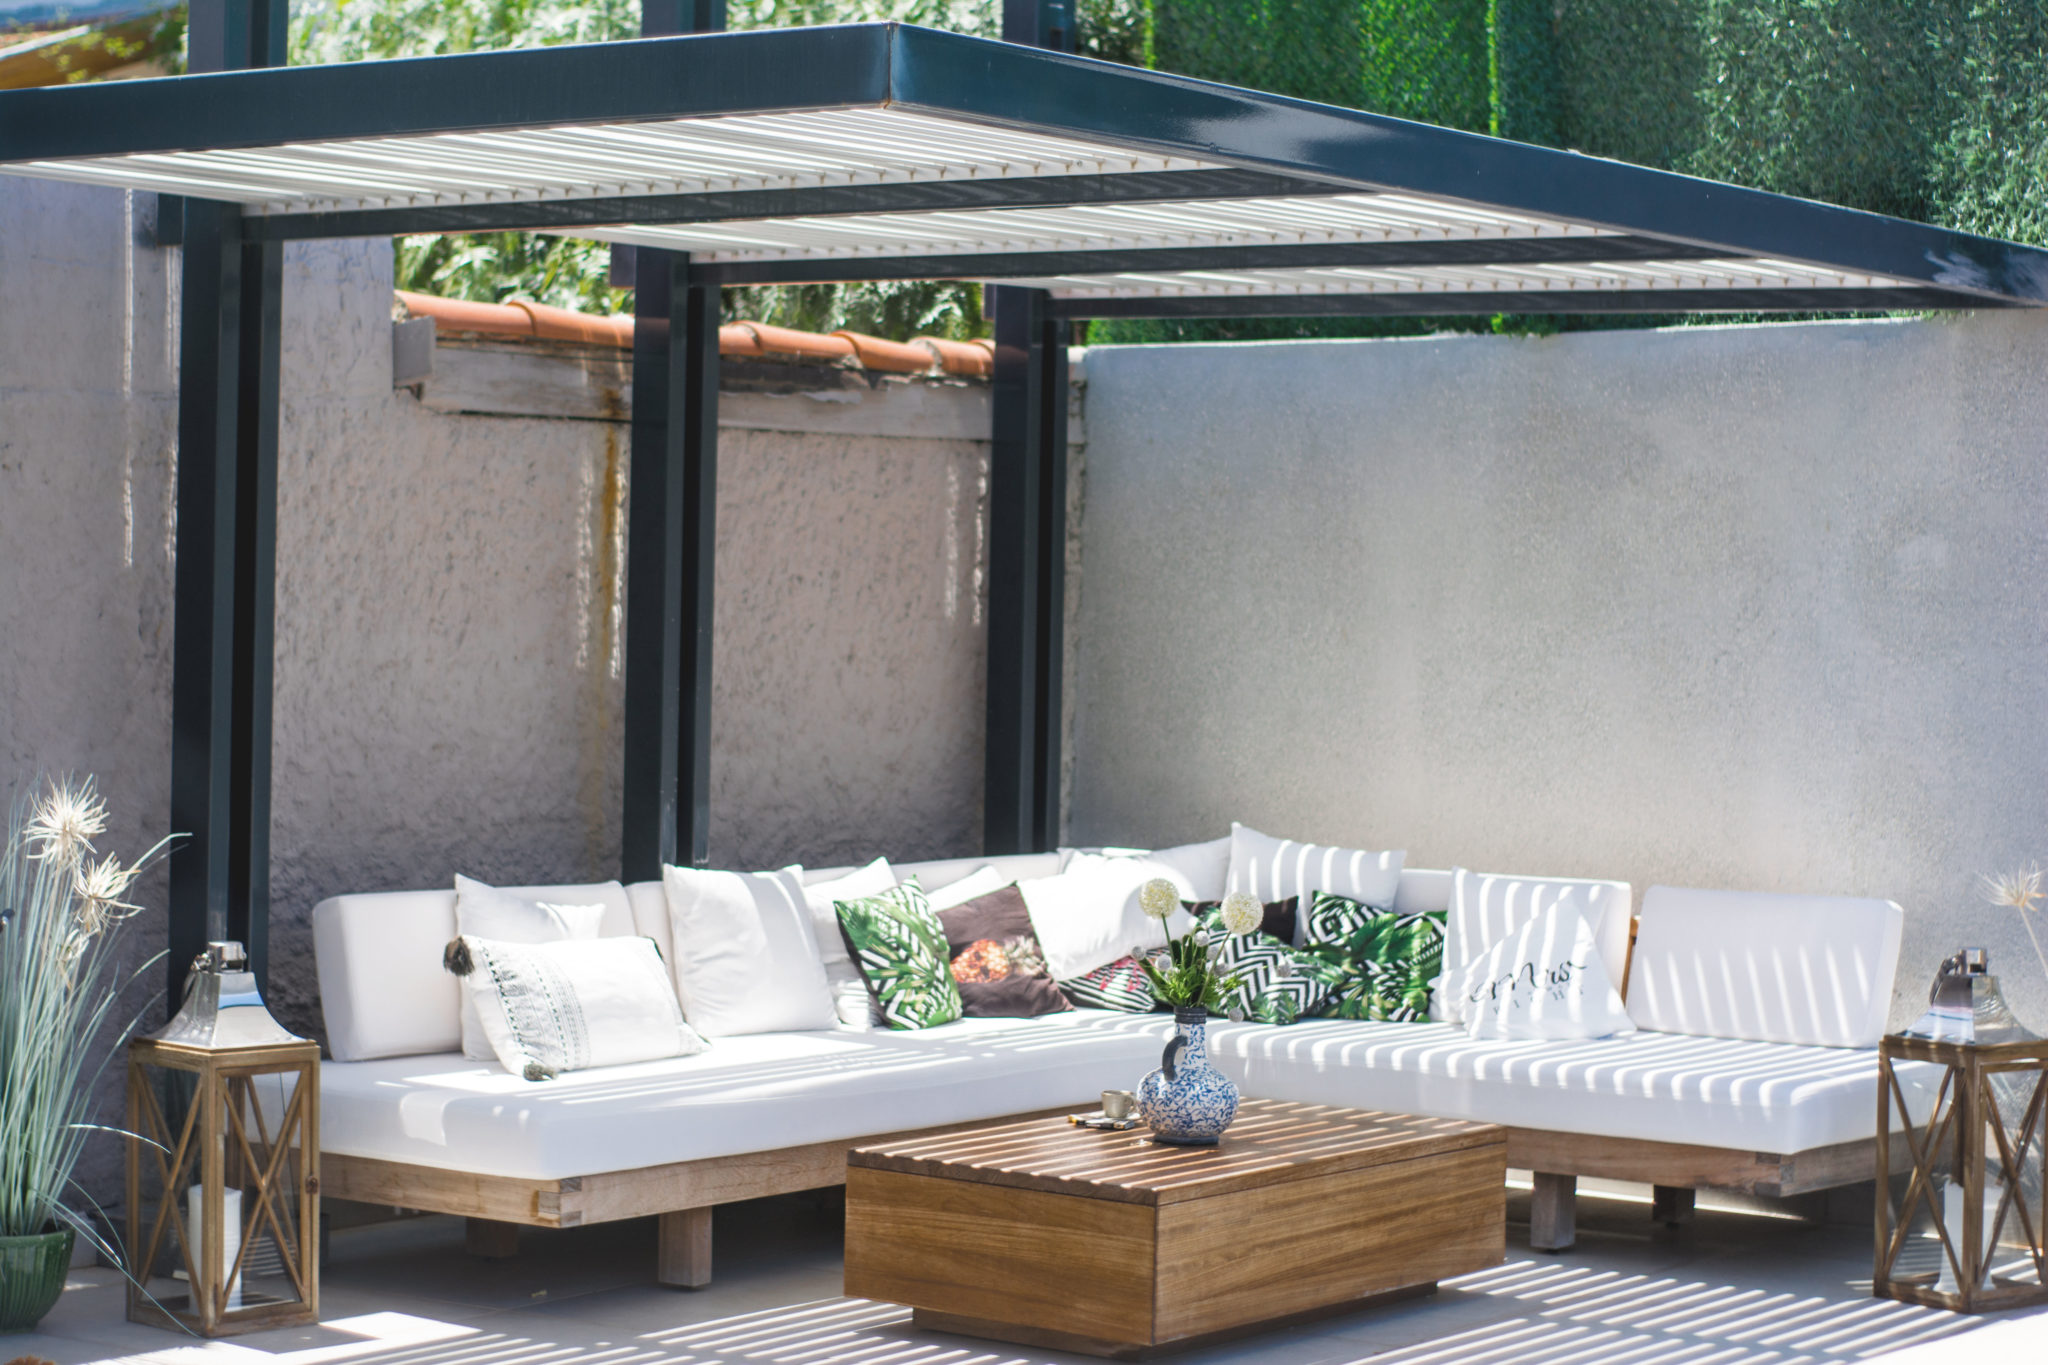 Five Fun Ideas for Patio Perfection